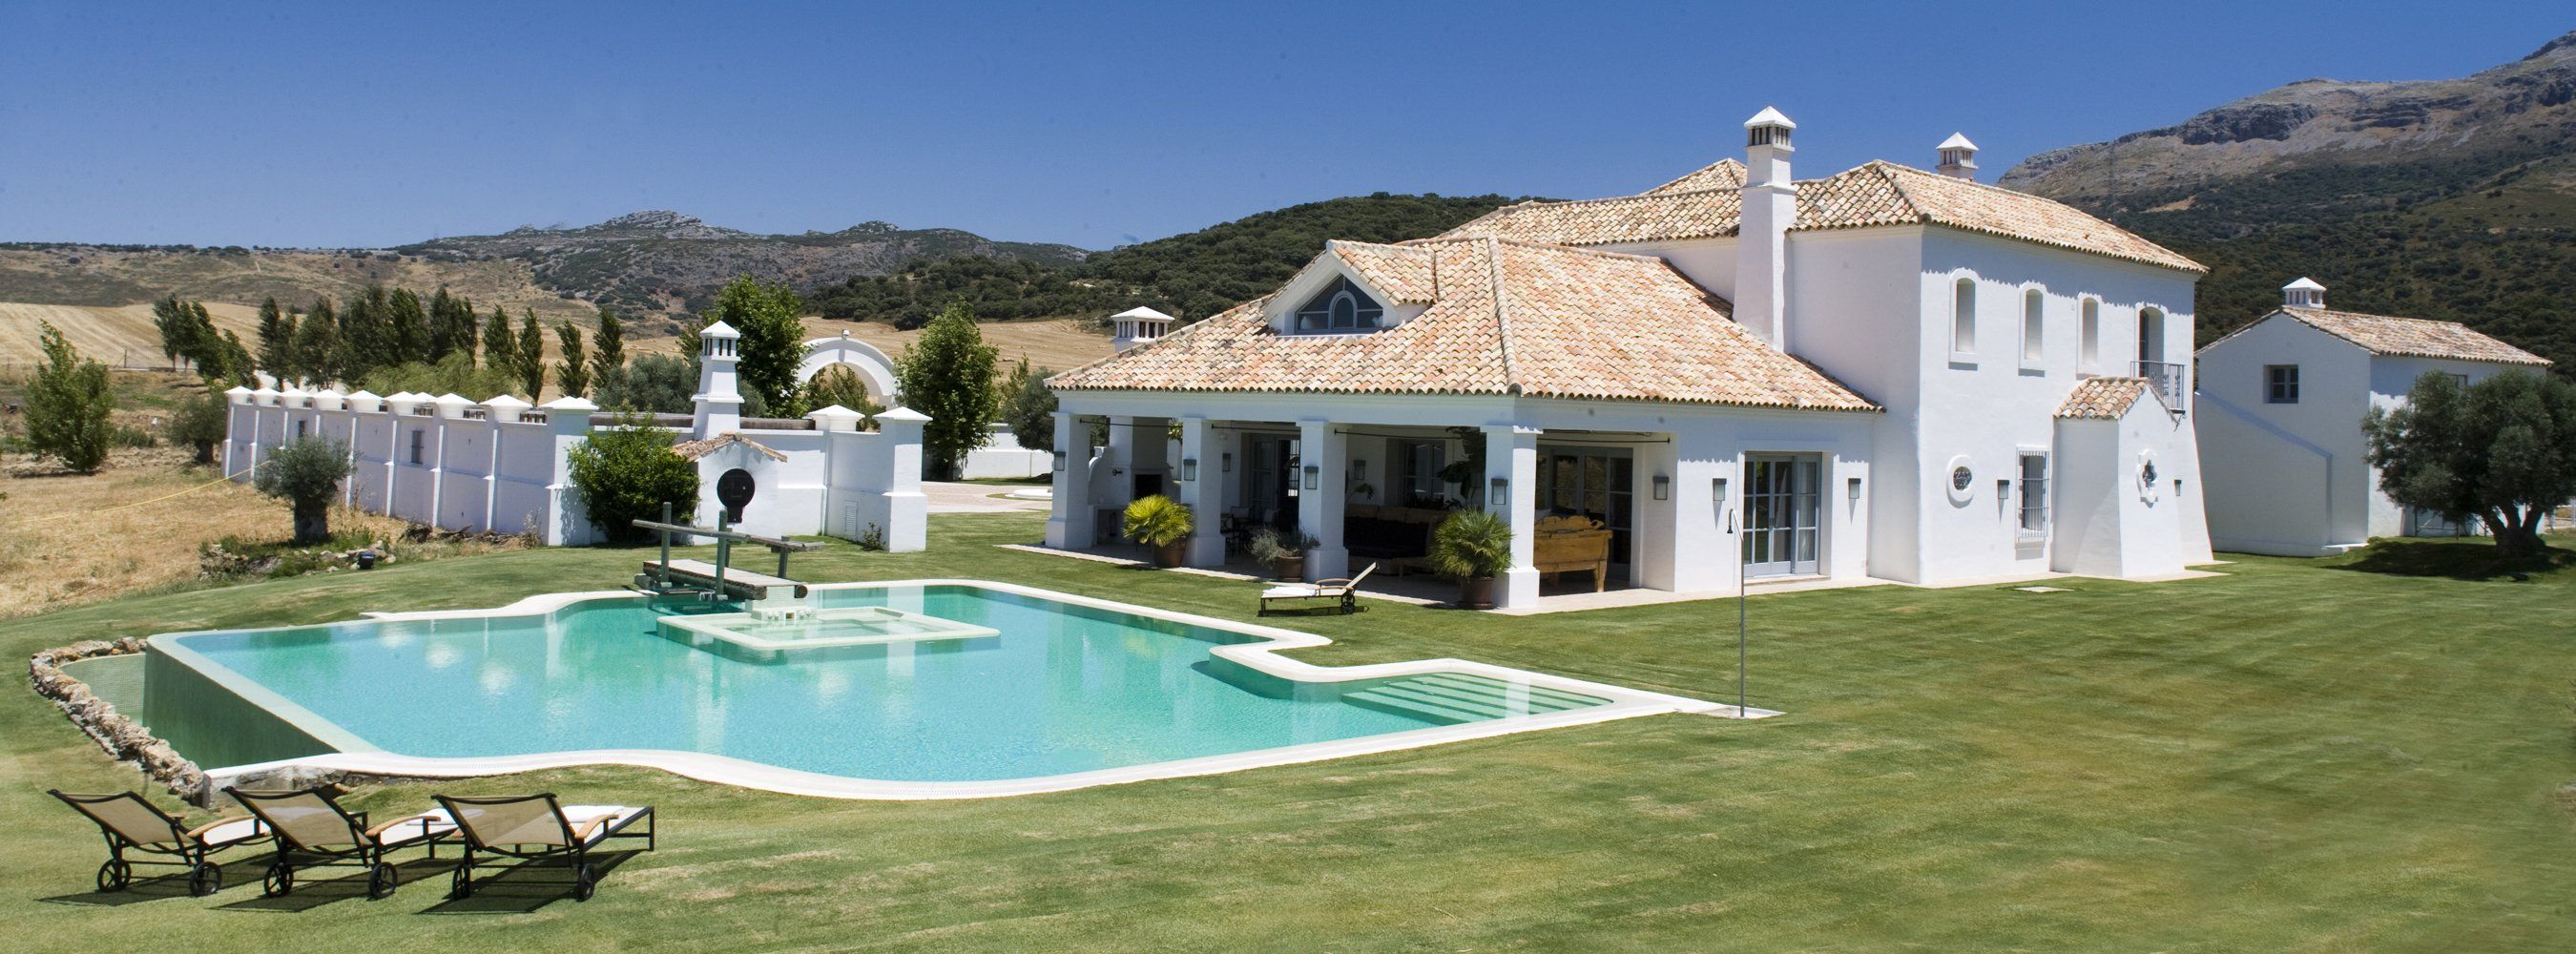 luxury villa ronda